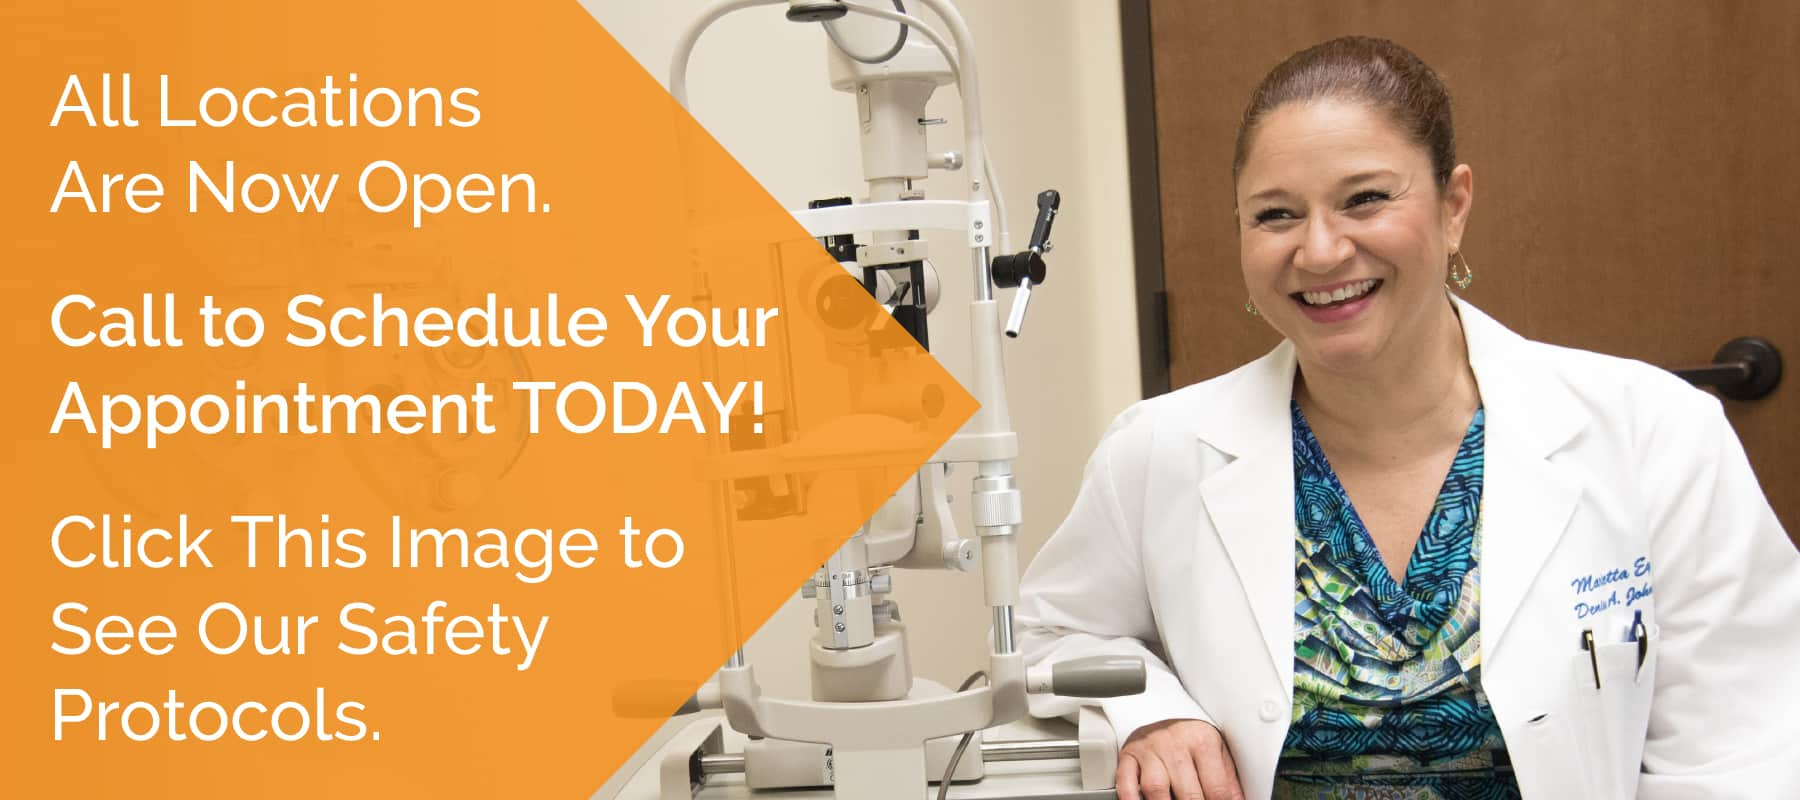 Dr. Denise Johnson is a comprehensive ophthalmologist at the Marietta Eye Clinic who specializes in cataracts, dry eye, and cosmetic treatments.